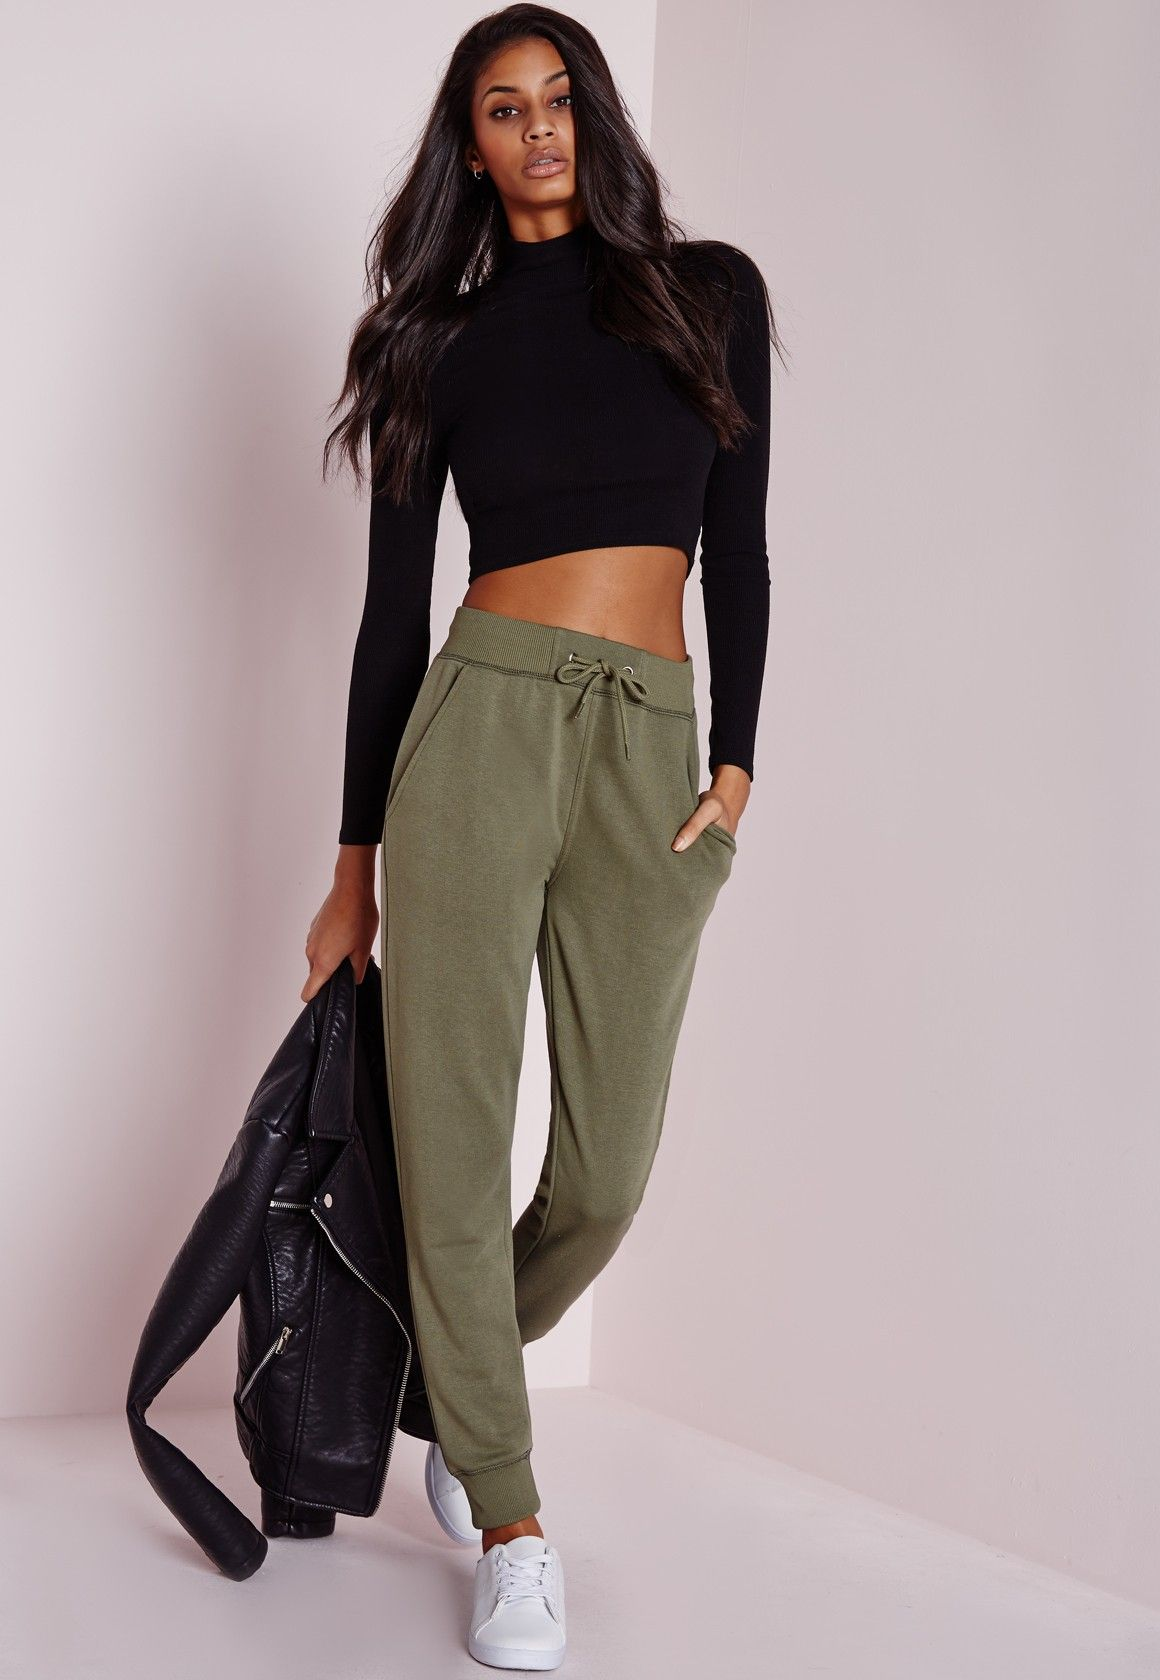 Missguided Tie Waist Joggers Cheap Classic Buy Cheap Perfect Hot Sale Cheap Online Clearance Visit New fegfPAy